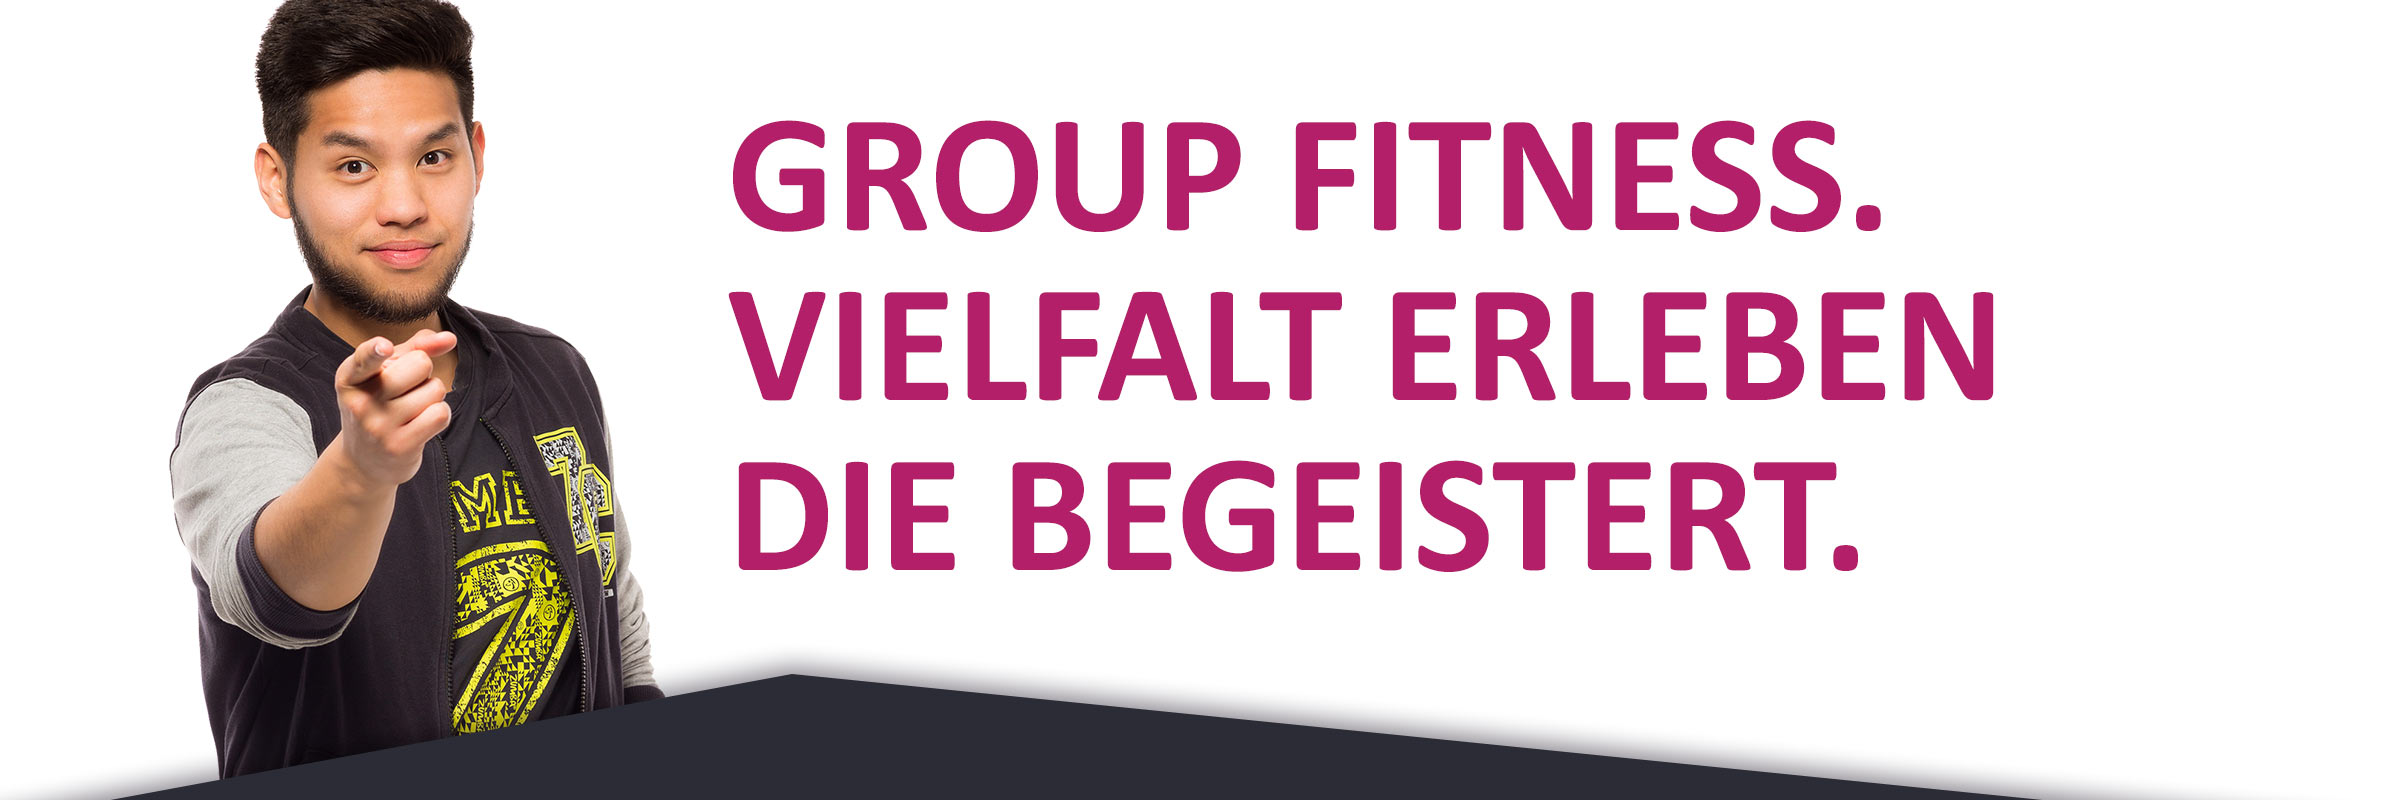 Feel Fit Gruppen Fitness